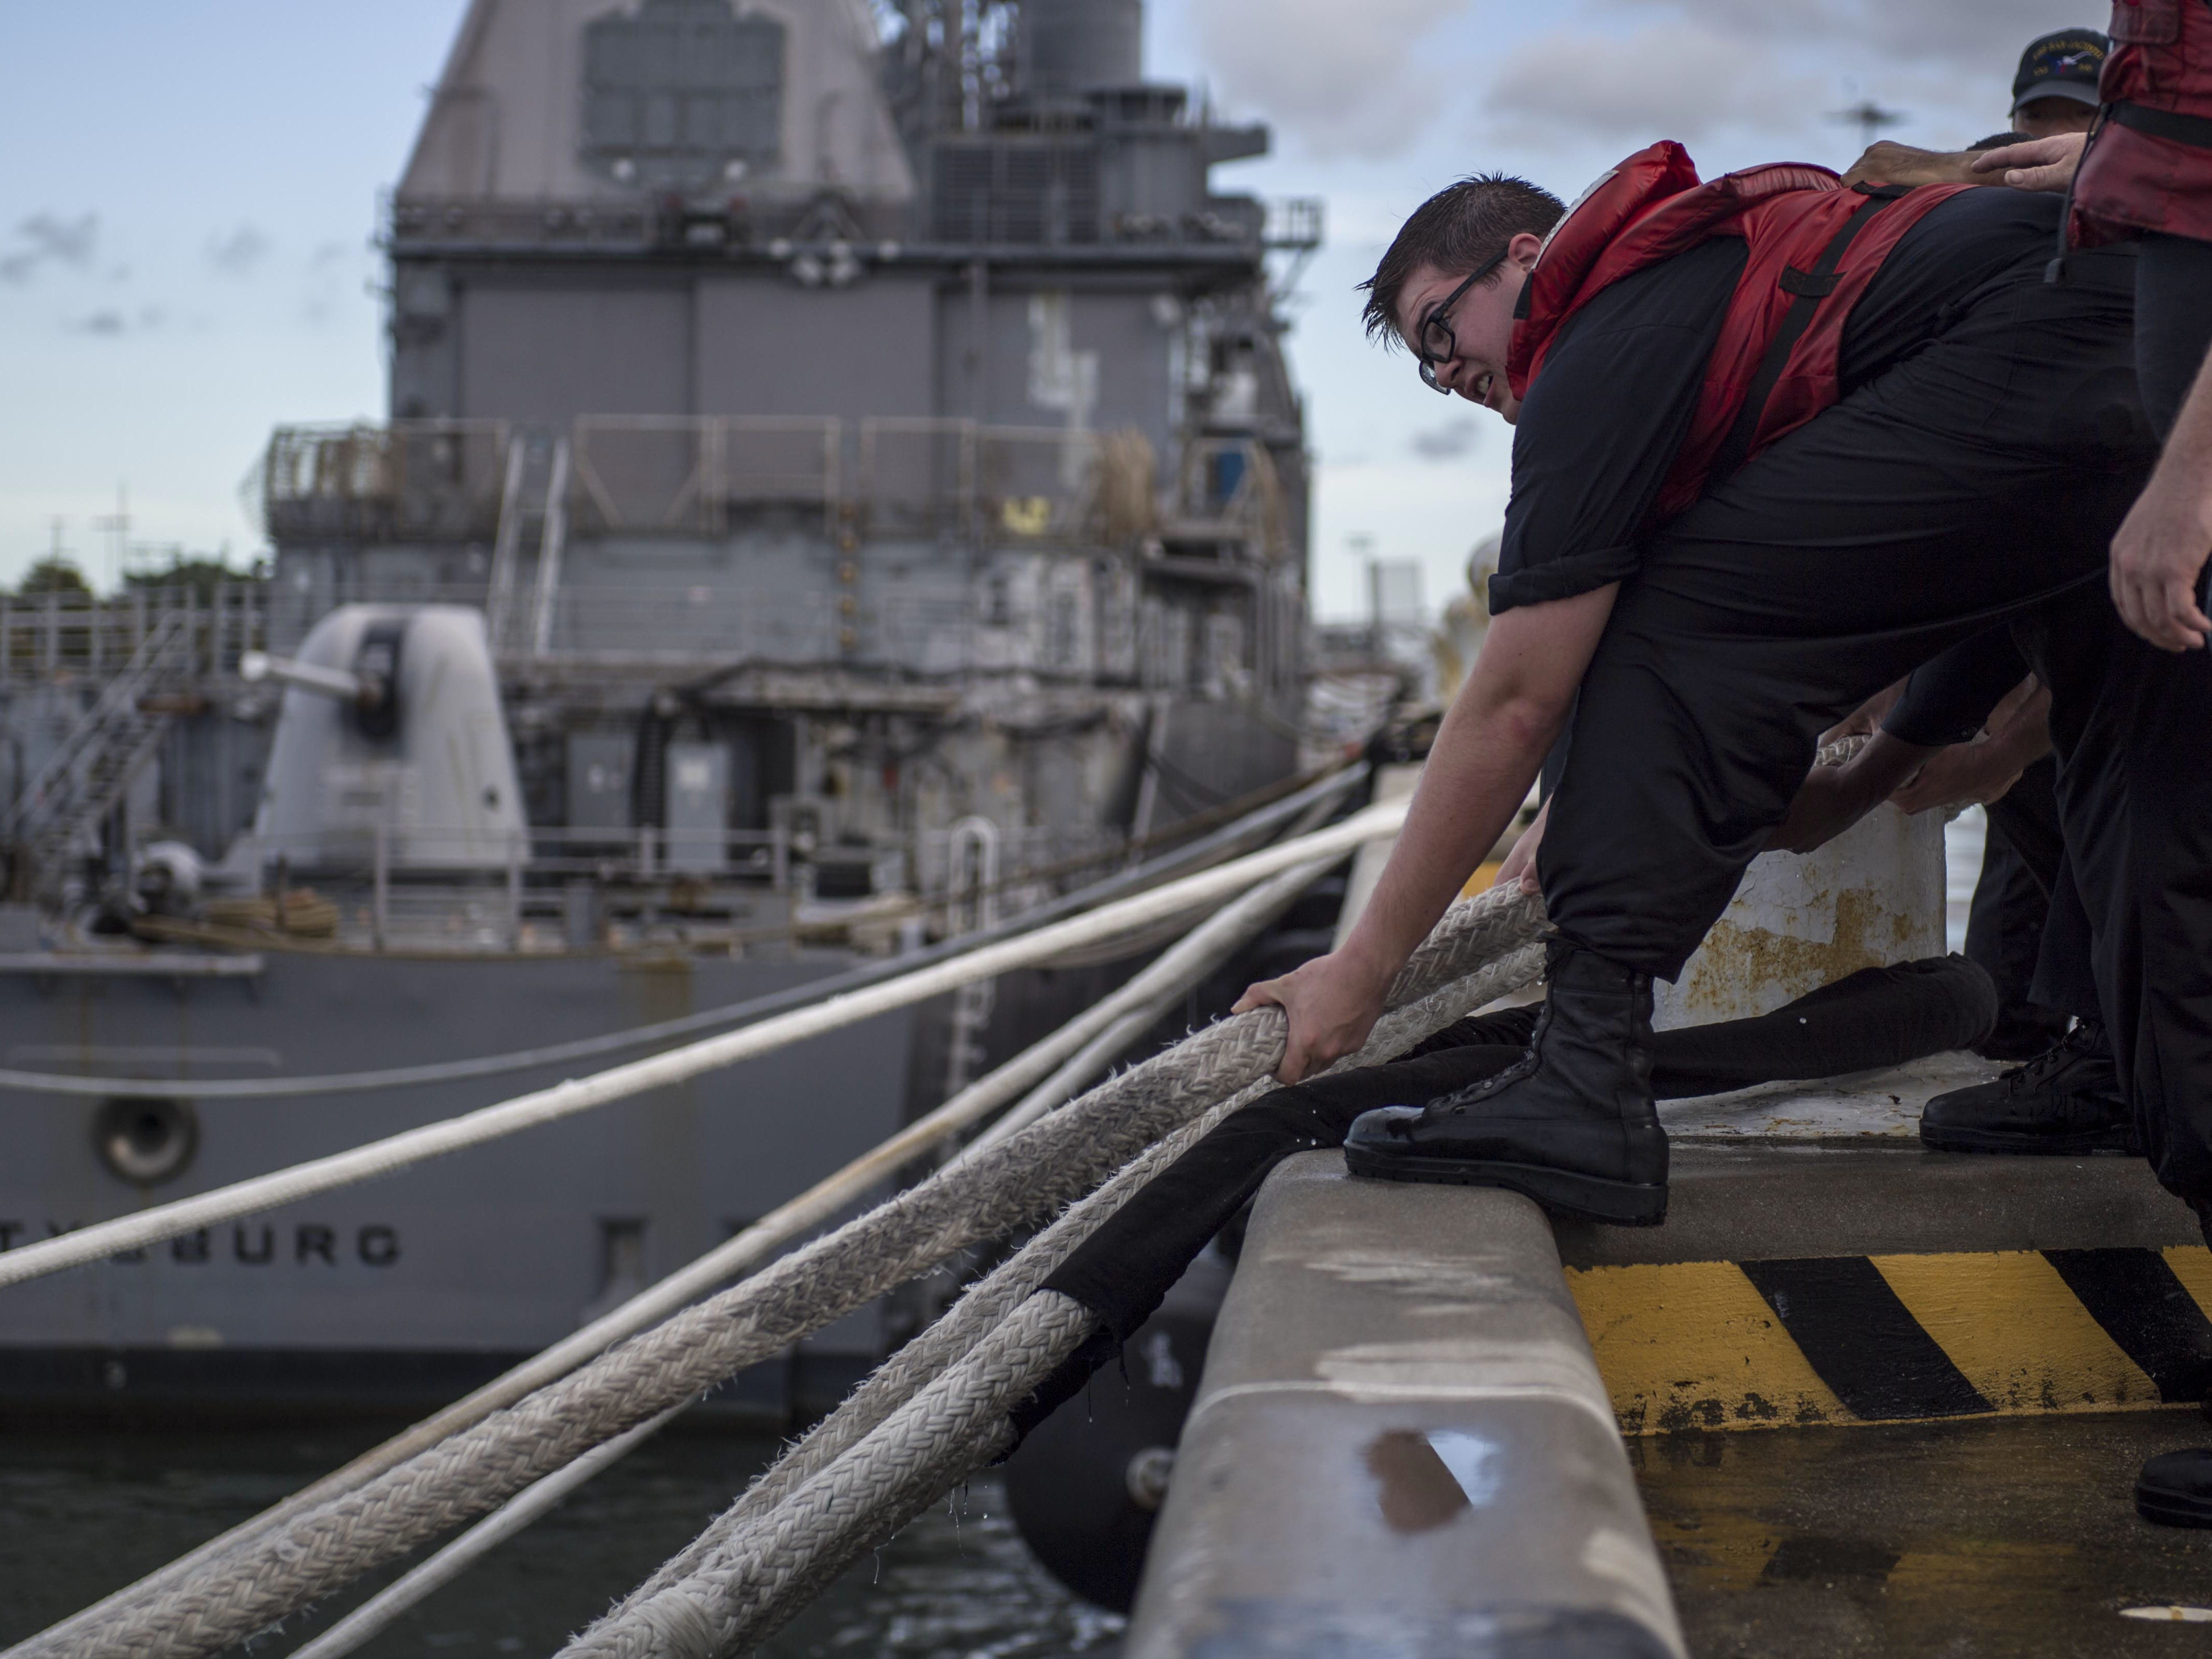 This US Navy photo released September 12, 2018 shows a Sailor as he heaves line during a heavy weather mooring evolution in preparation for Hurricane Florence on September 11, 2018 in Norfolk, Virginia. - Some ships will not get underway due to maintenance and are taking extra precautions to avoid potential damage. Commanding officers have a number of options when staying in port. Some of these options include adding additional mooring and storm lines, dropping the anchor, and disconnecting shore power cables.